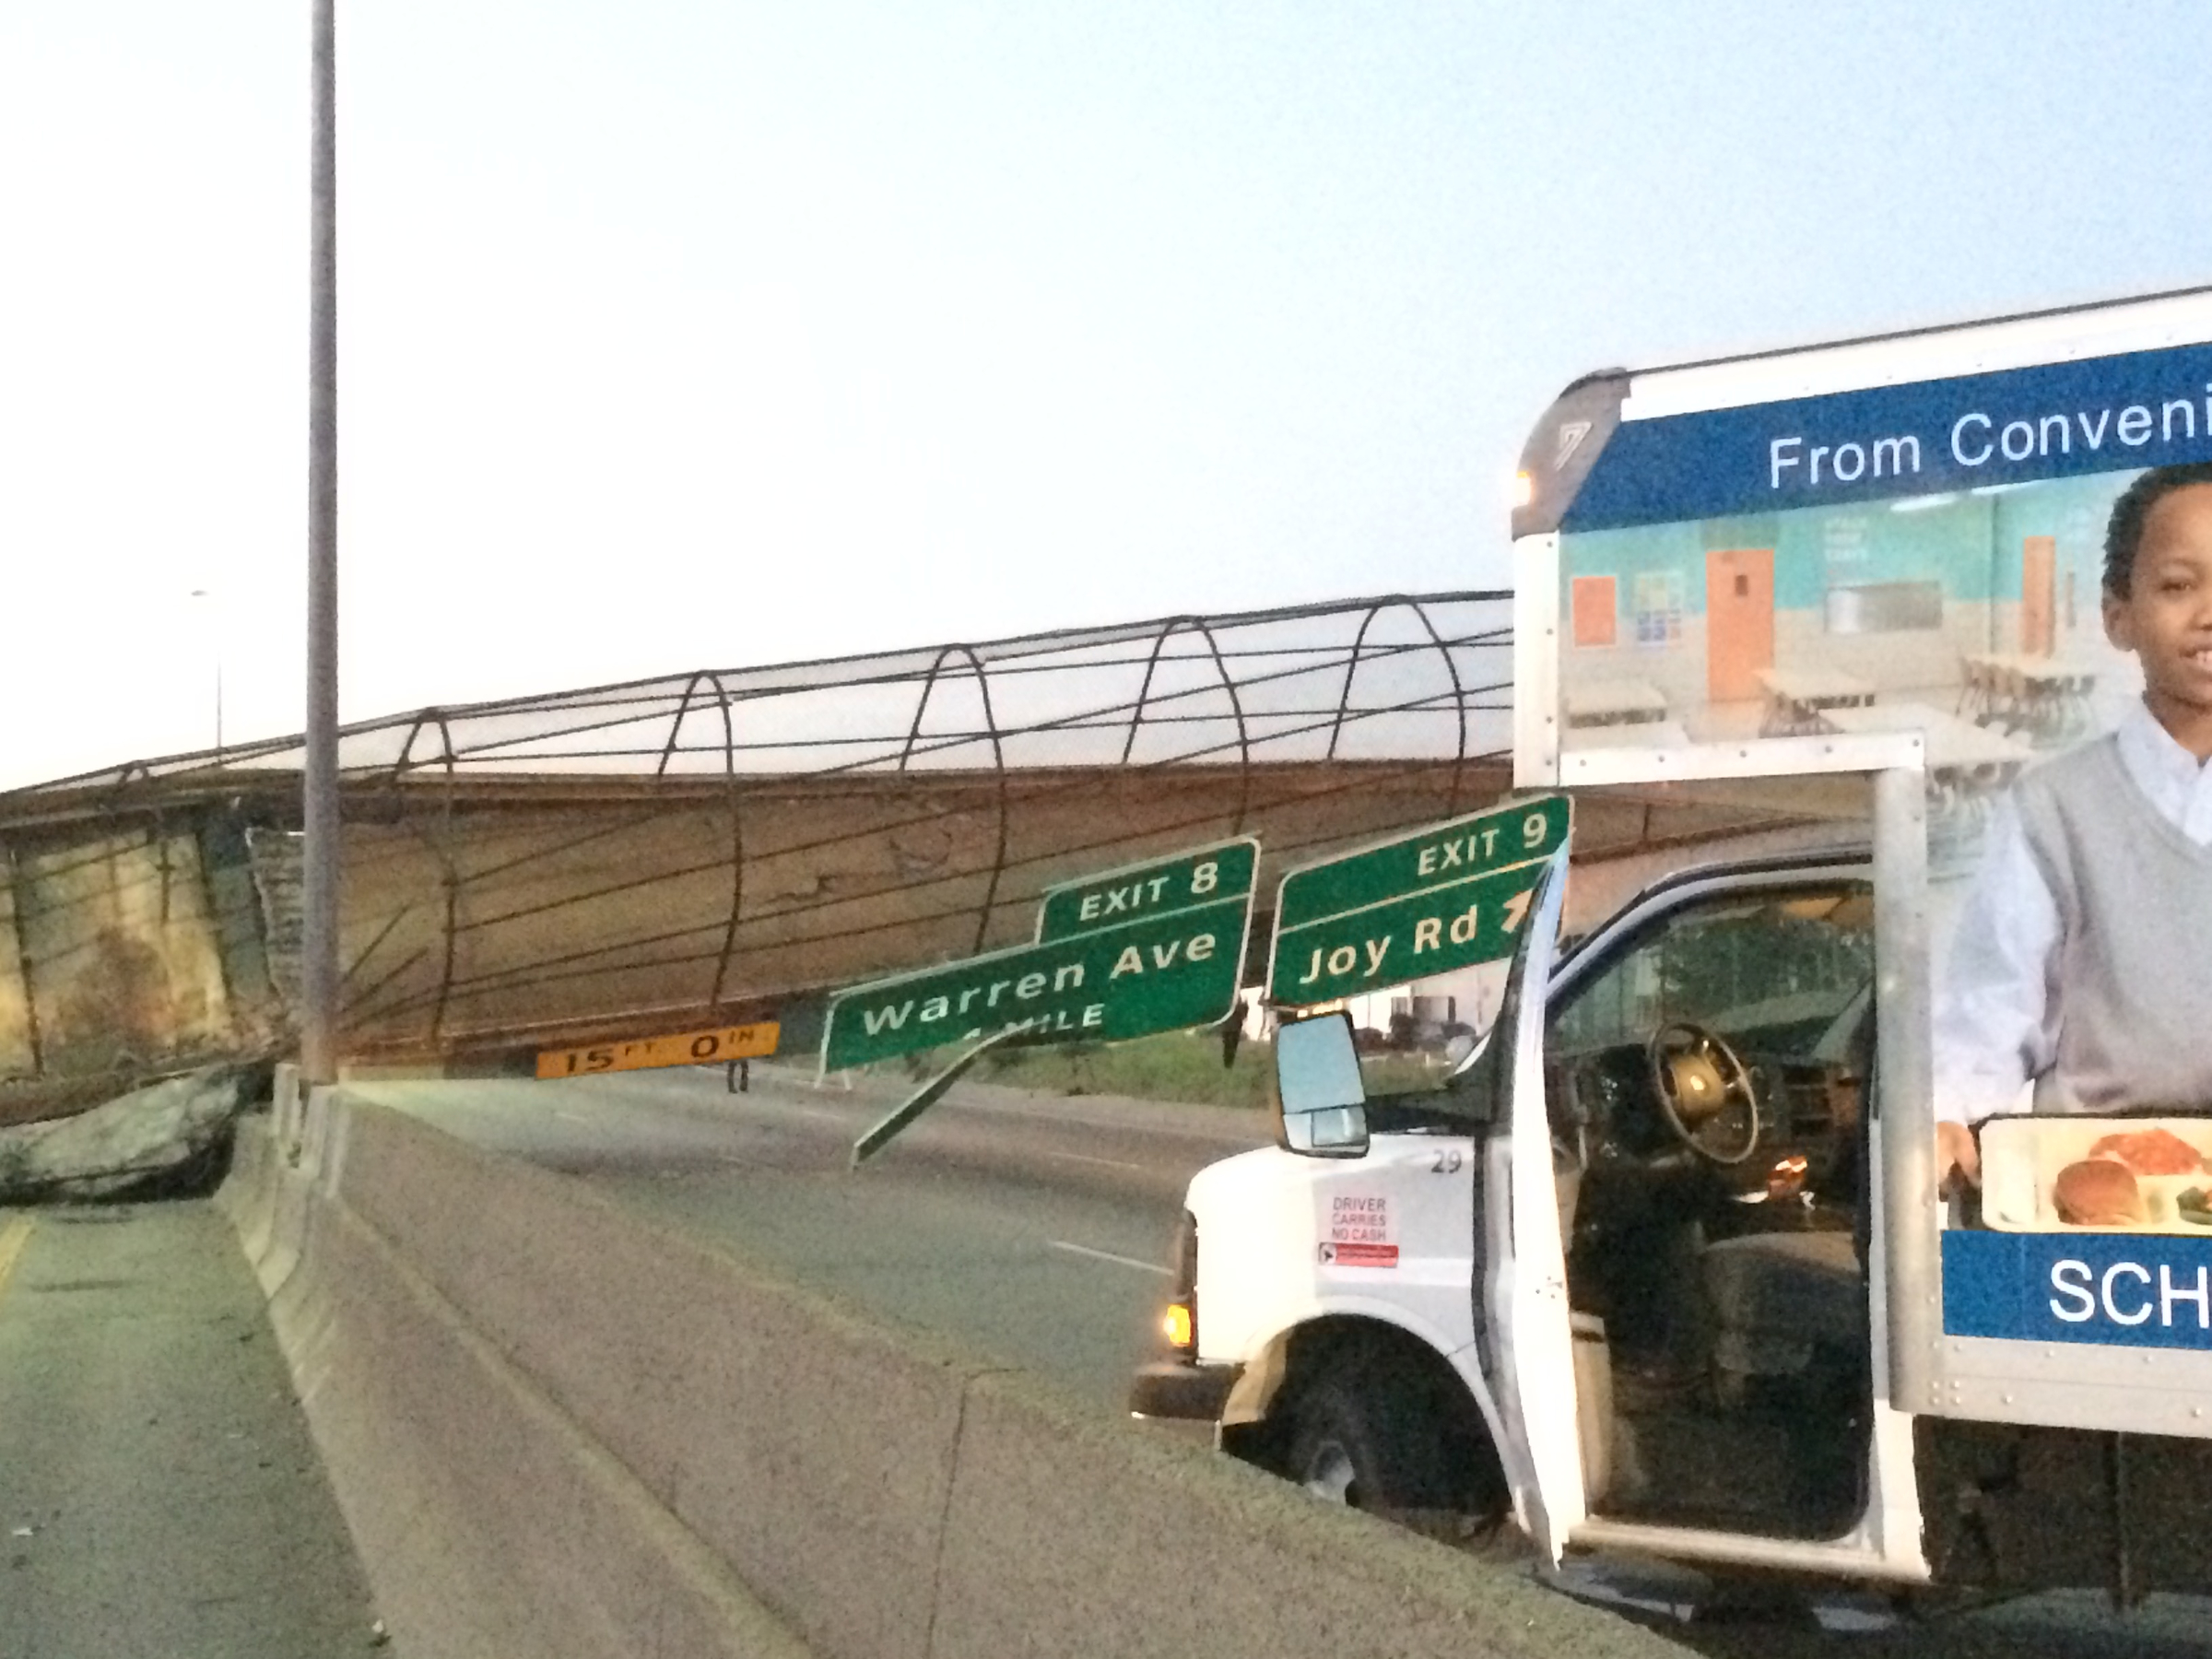 The Cathedral Road pedestrian bridge lies collapsed on the south M-39 highway after a truck hit it on Sept. 26, 2014, in Detroit.